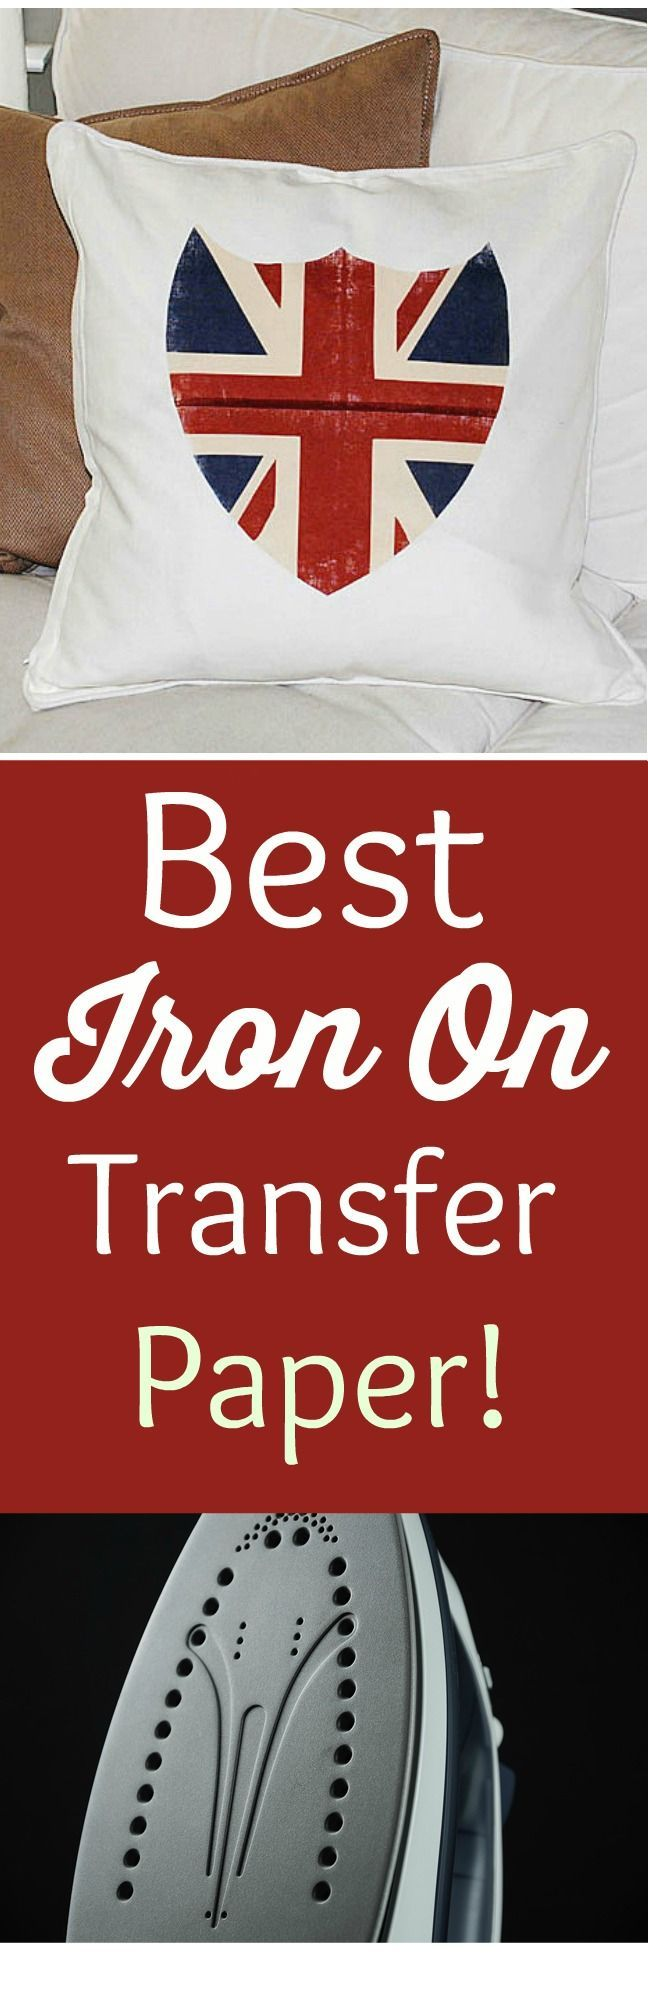 Best Iron On Transfer Paper! - Union Jack Shield Pillow Printable and Transfer Technique - The Graphics Fairy. I call this the Holy Grail of Iron On Transfer papers! Perfect for all of your Crafts and DIY Decorating Projects and the finish and texture is far better than all the other brands!